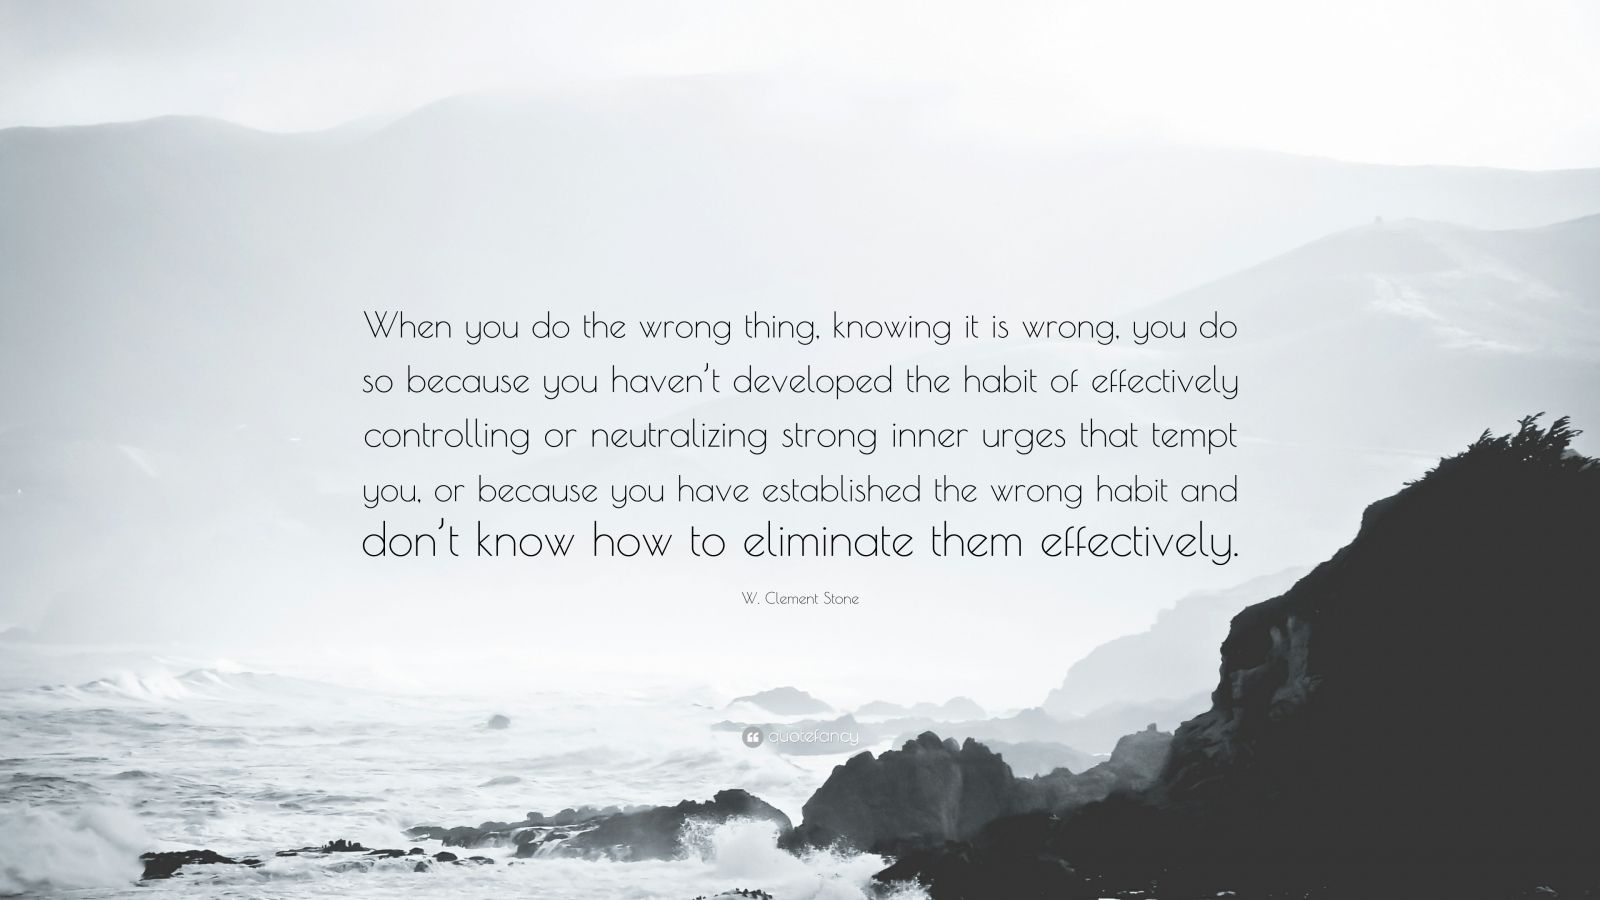 "W. Clement Stone Quote: ""When you do the wrong thing, knowing it is wrong, you do so because you haven't developed the habit of effectively controlling or neutralizing strong inner urges that tempt you, or because you have established the wrong habit and don't know how to eliminate them effectively."""